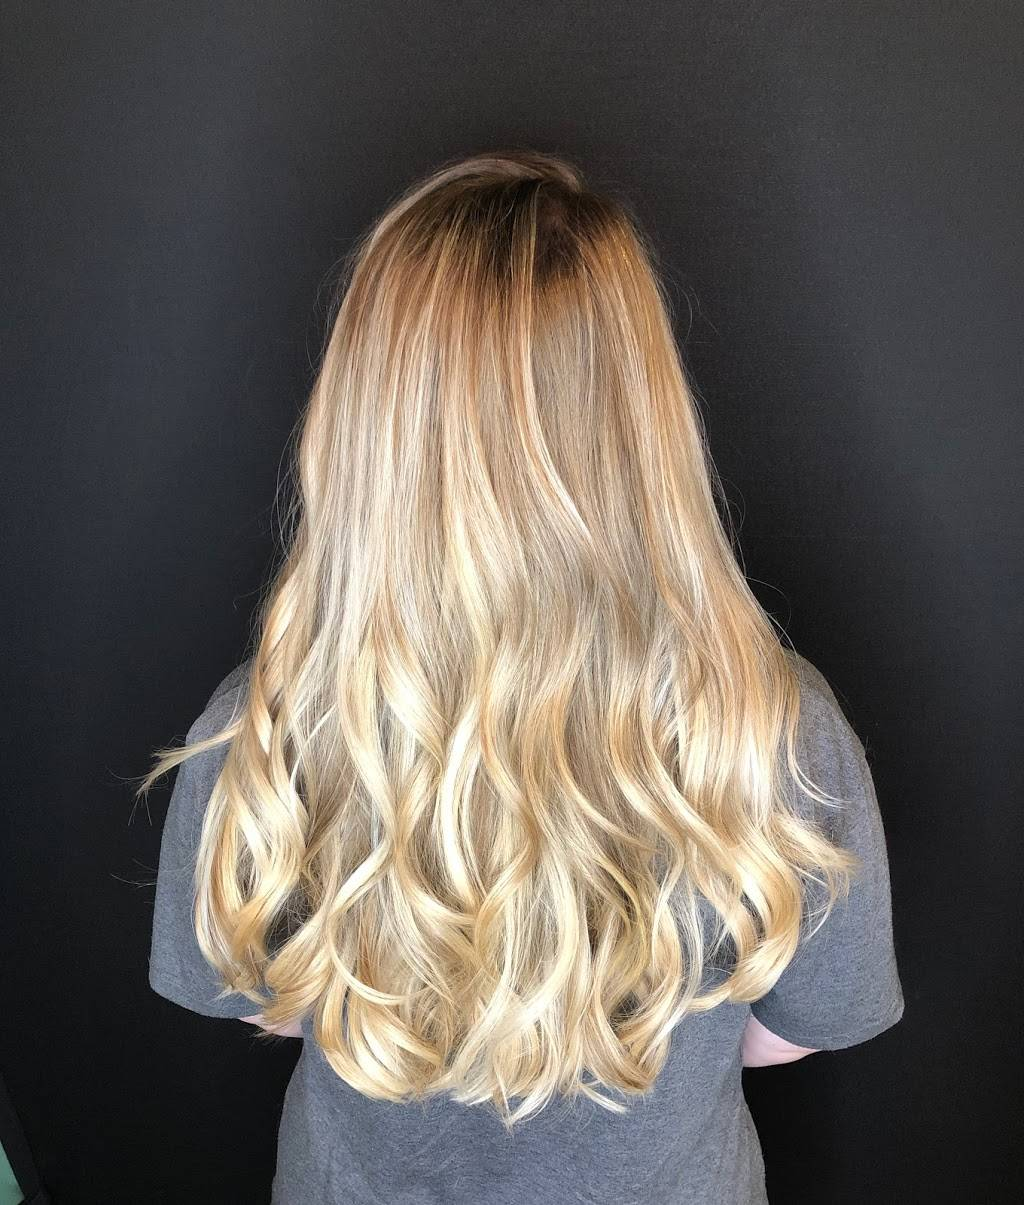 Currin Marcum at Roots Salon - hair care    Photo 7 of 10   Address: 6299 Central Ave, St. Petersburg, FL 33710, USA   Phone: (727) 248-9375